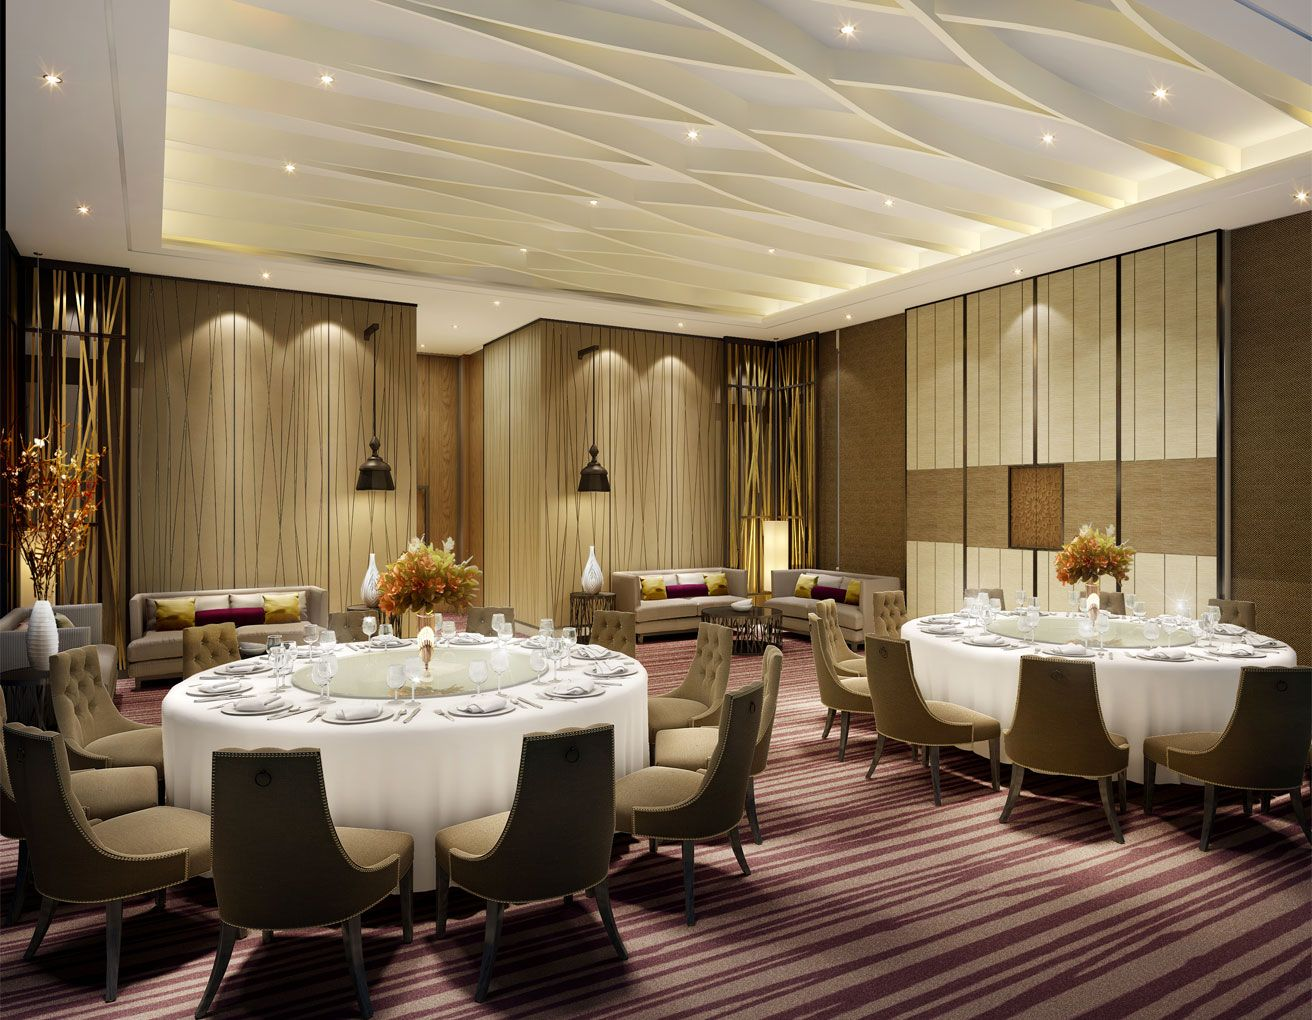 hba london for alpina gstaad hotel swiss alps design trends and hba london for alpina gstaad hotel swiss alps design trends and ballrooms